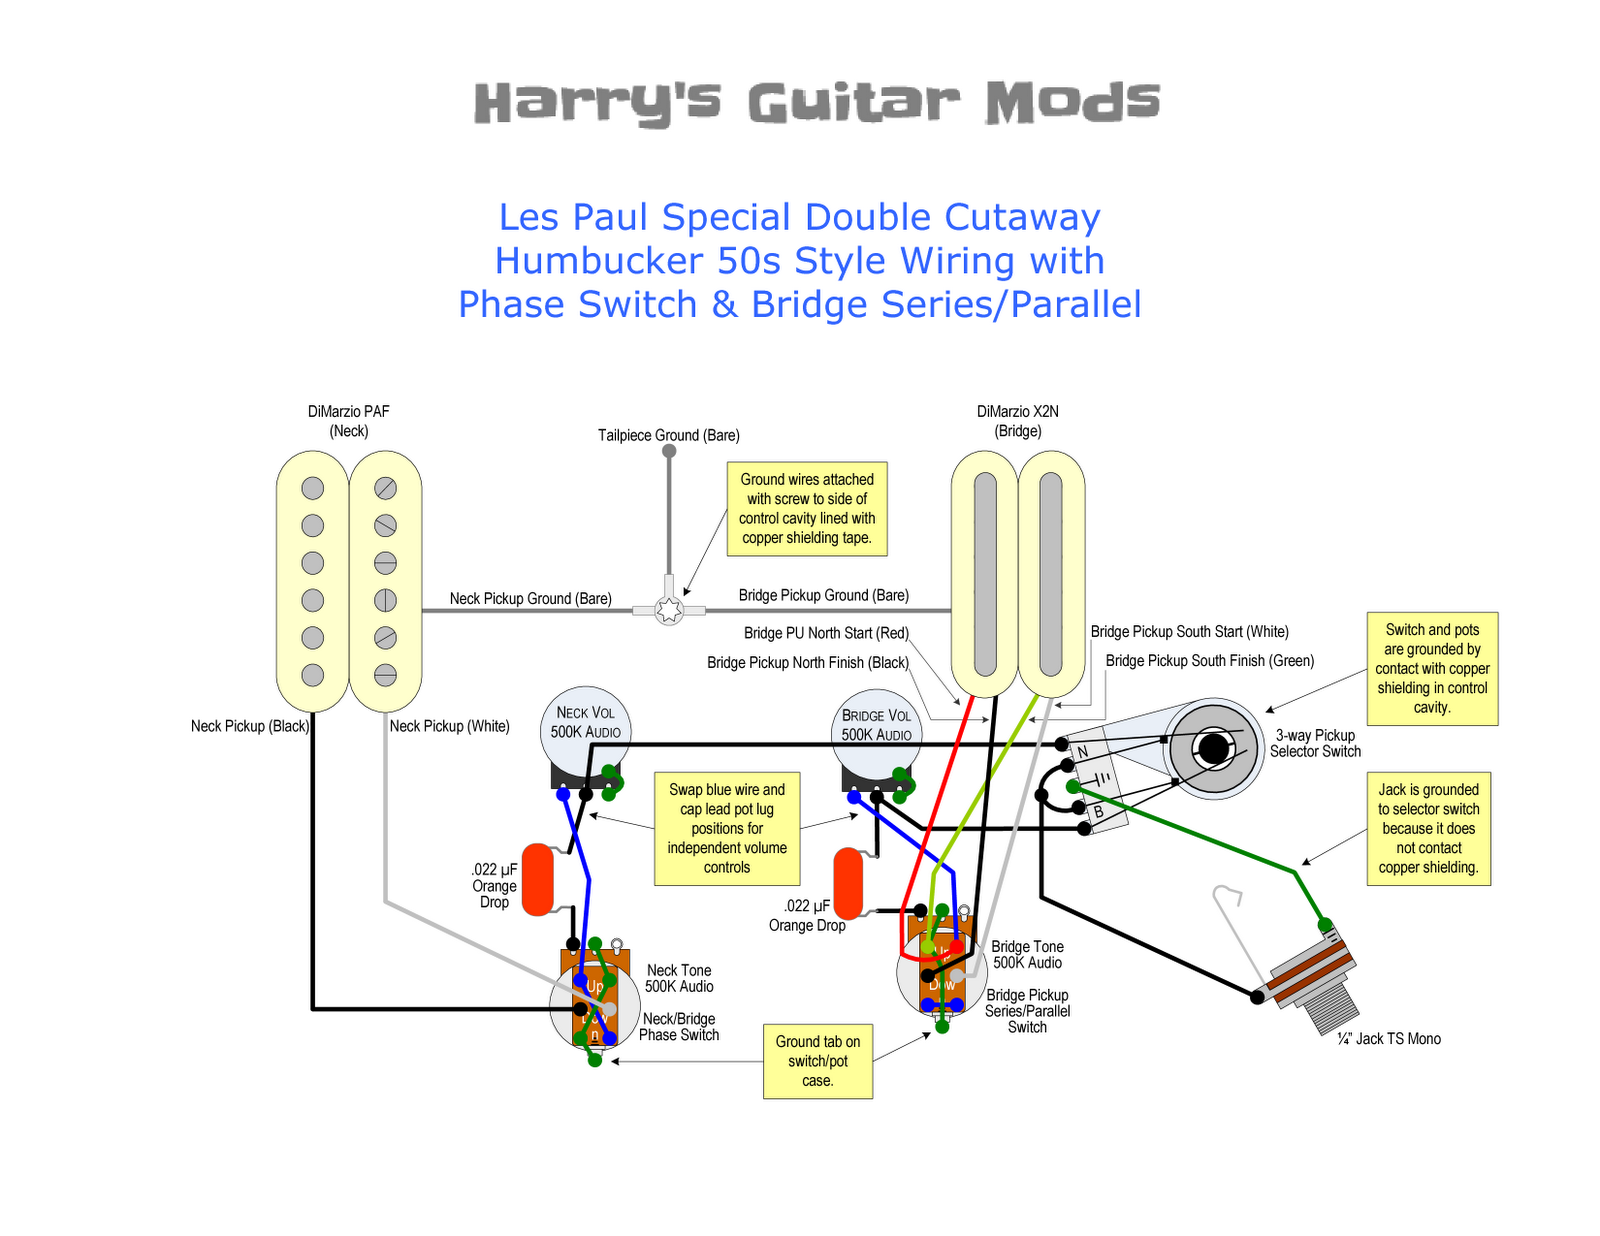 Dimarzio Sg Wiring Diagram Another Blog About Harry S Guitar Mods Controls Upgrade Rh Hgmods Com